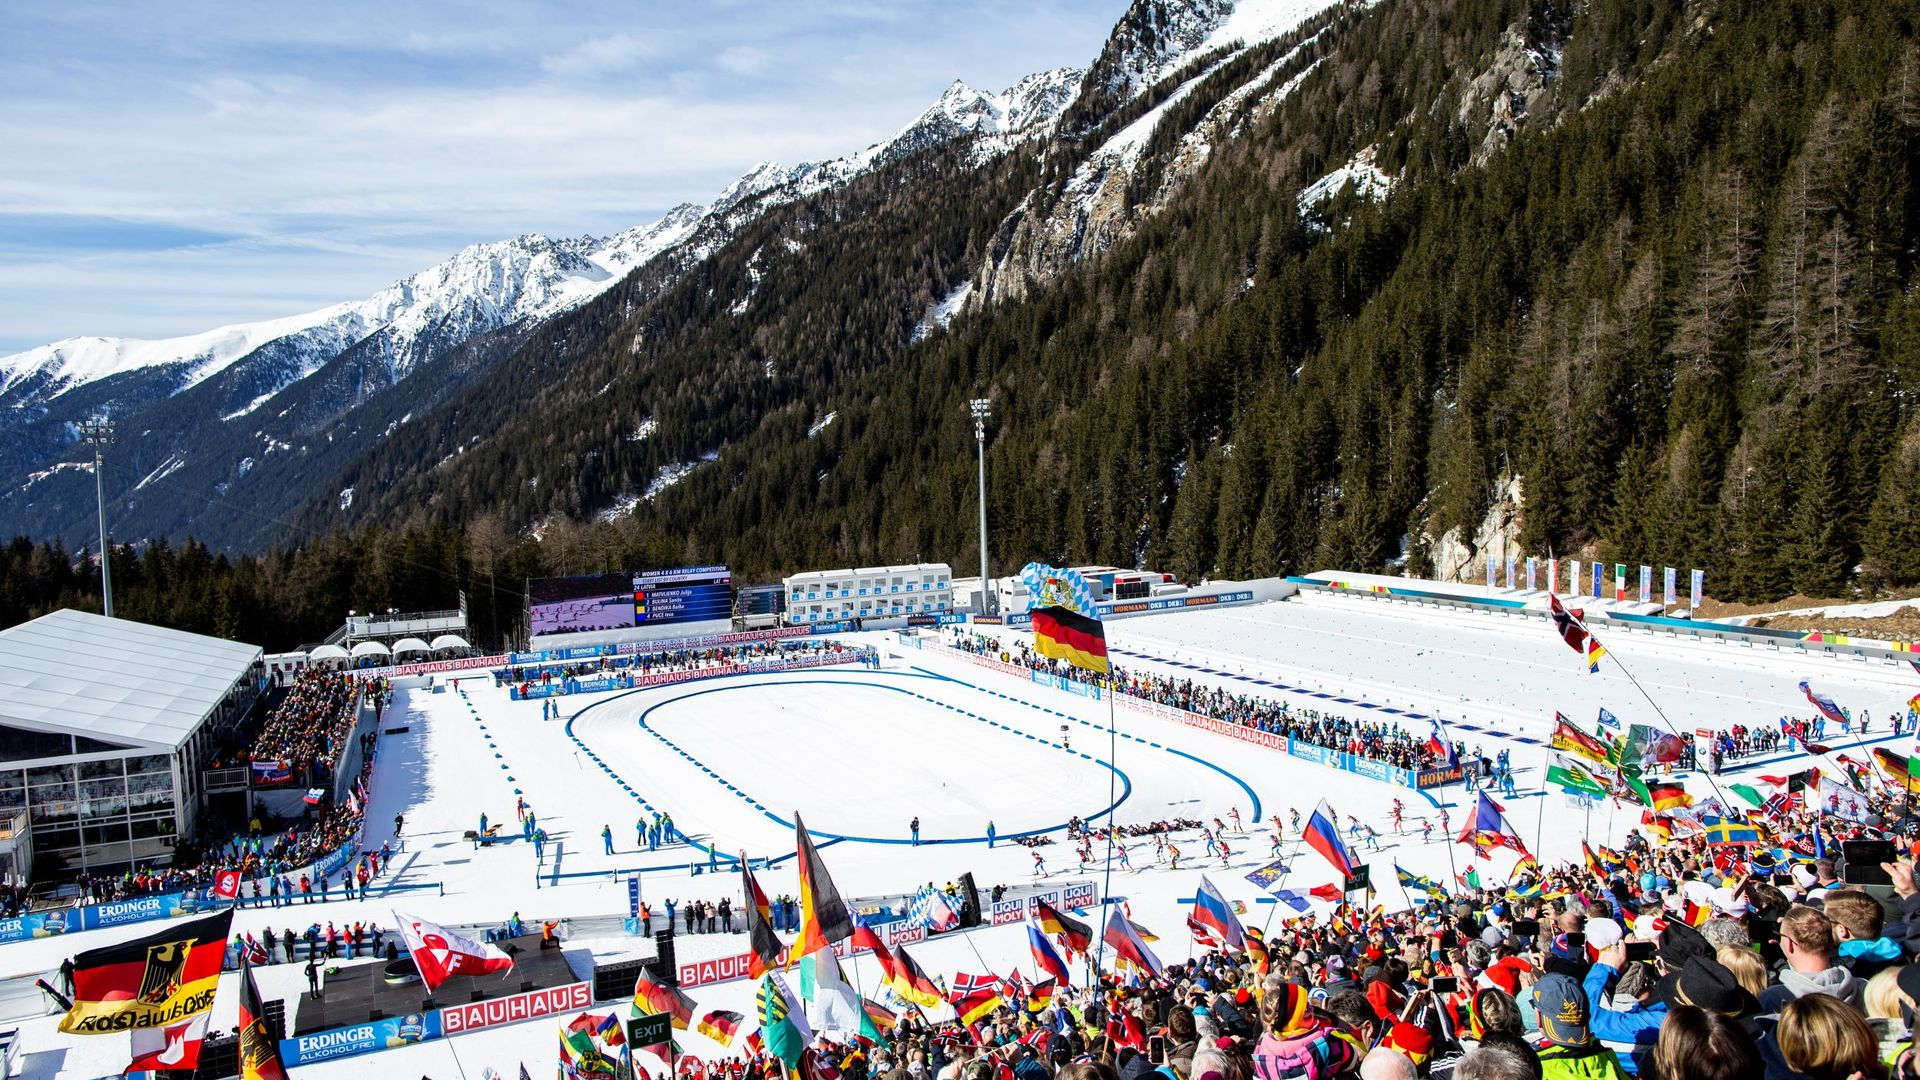 05.10.2020 - The Biathlon World Cup returns to Antholz in January 2021